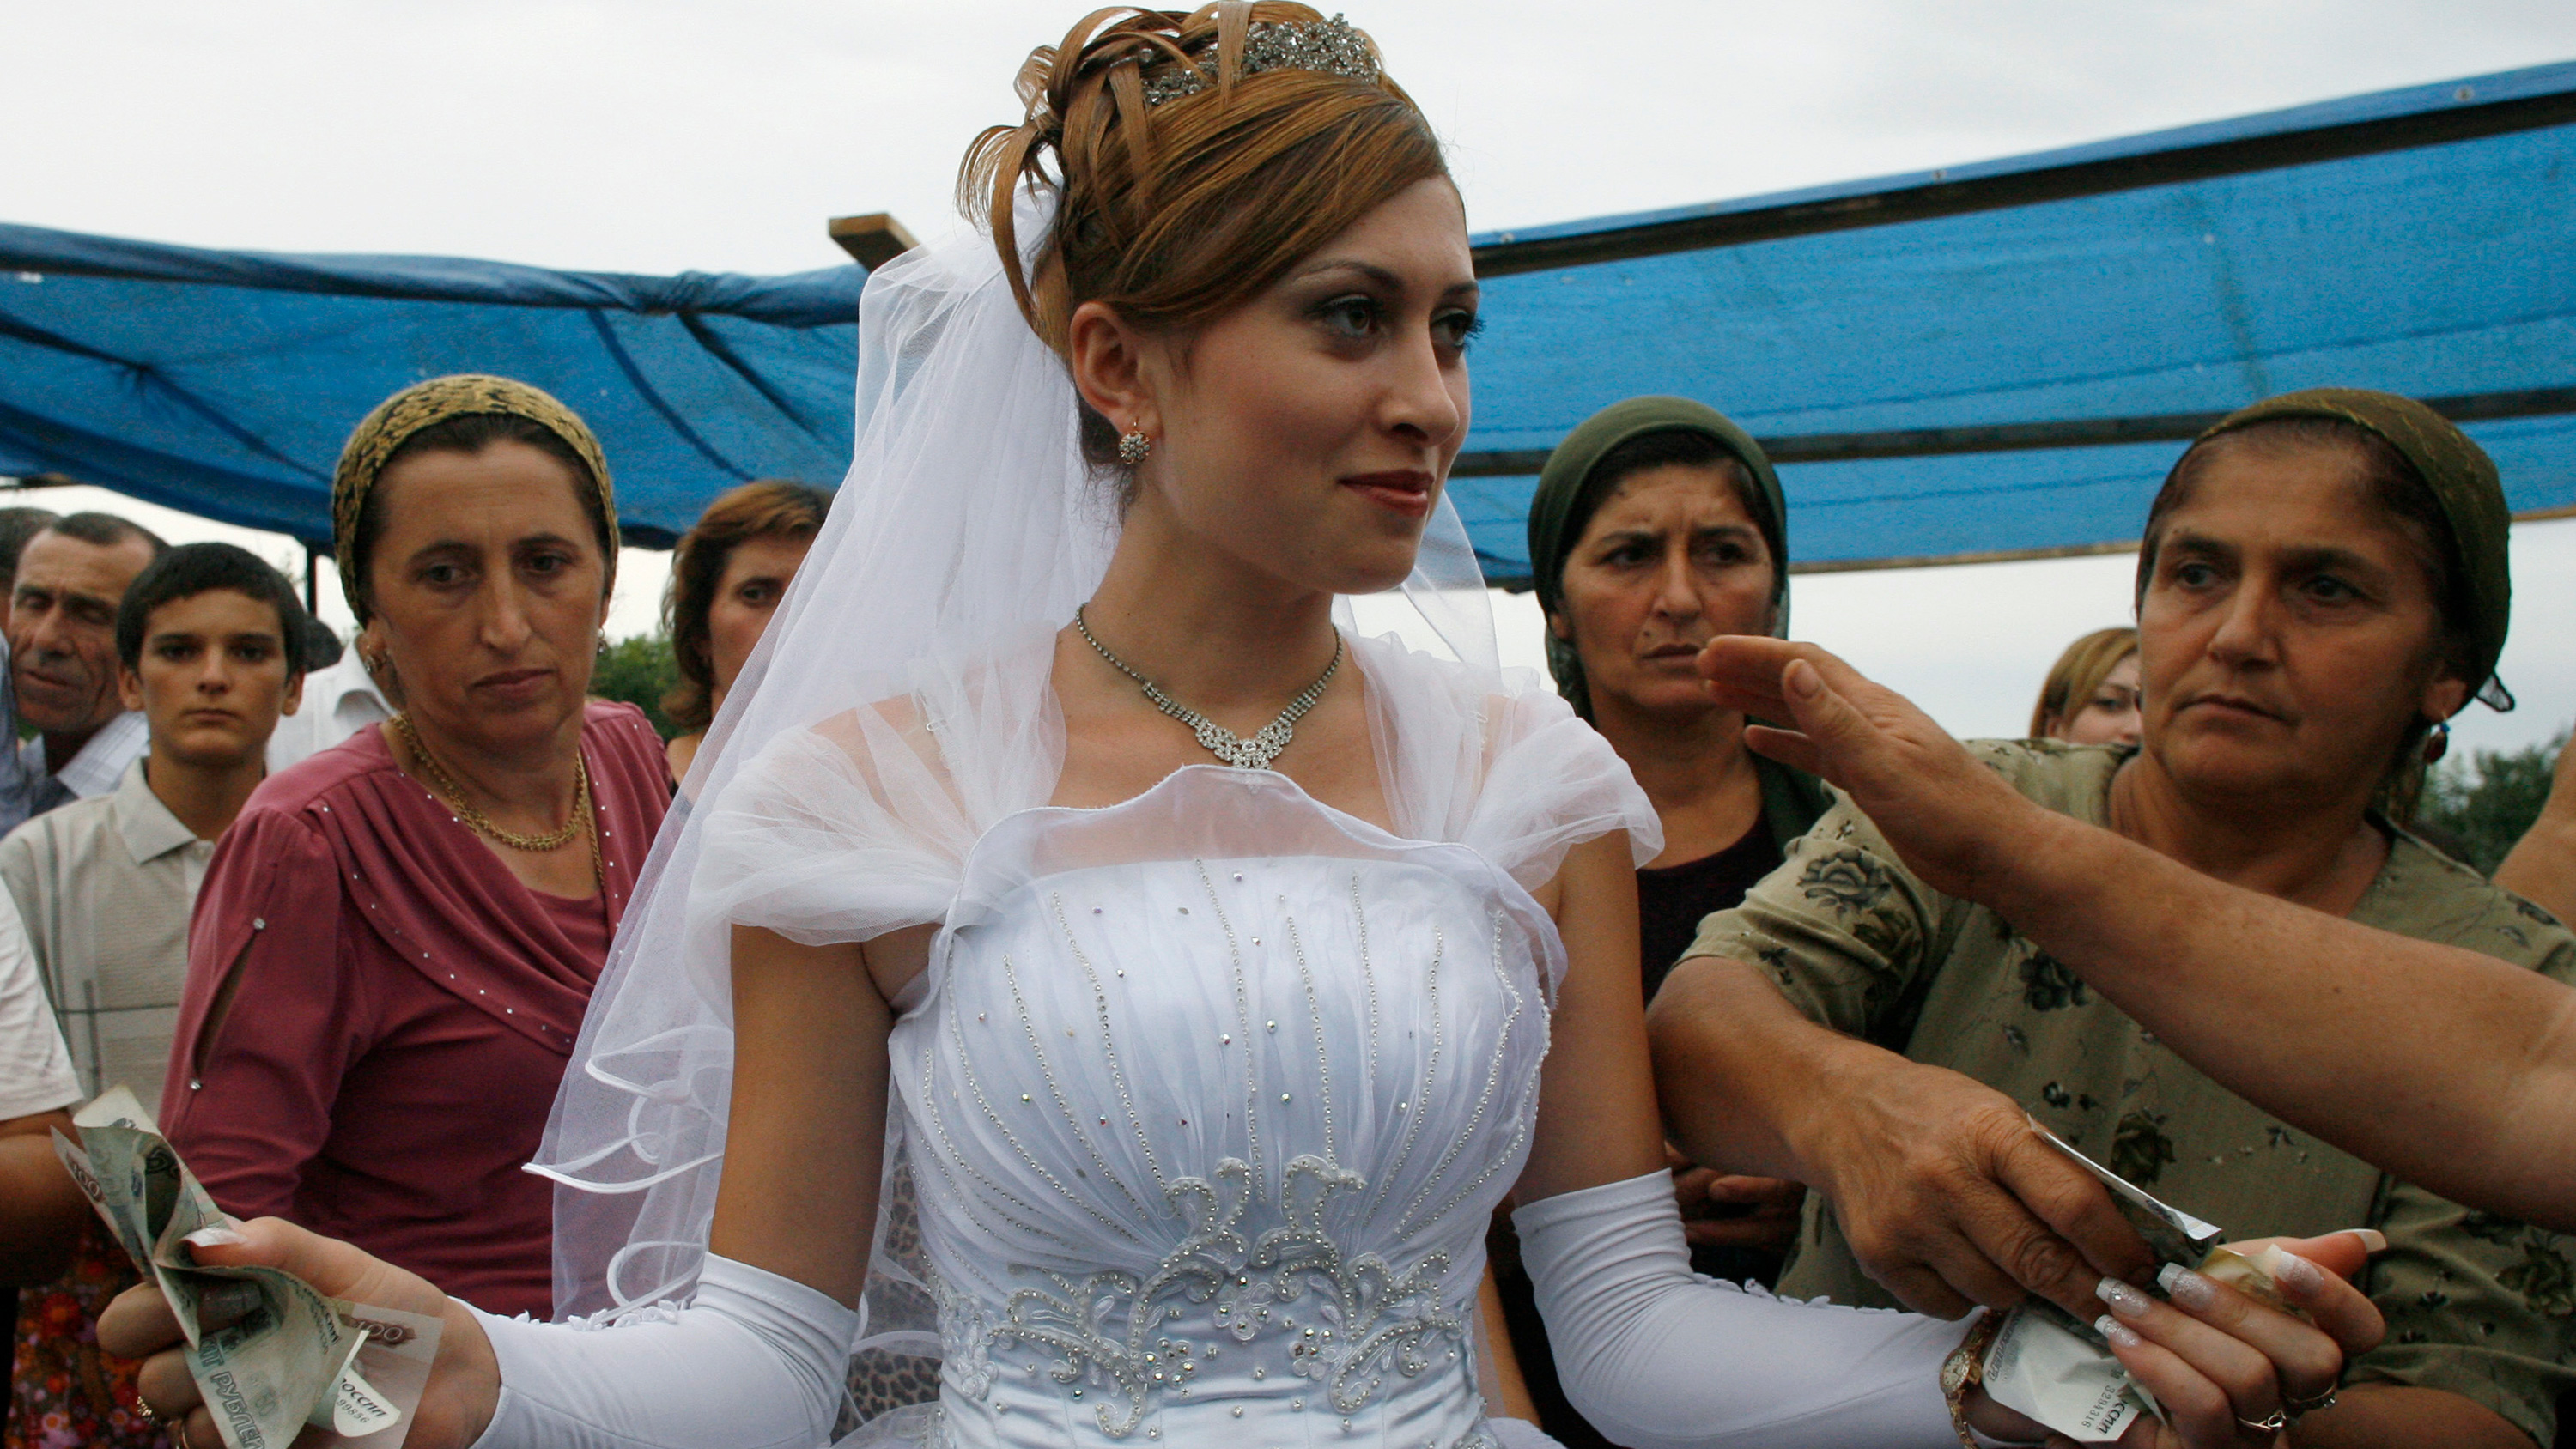 The photo shows a bride at the center of the frame surrounded by older women.